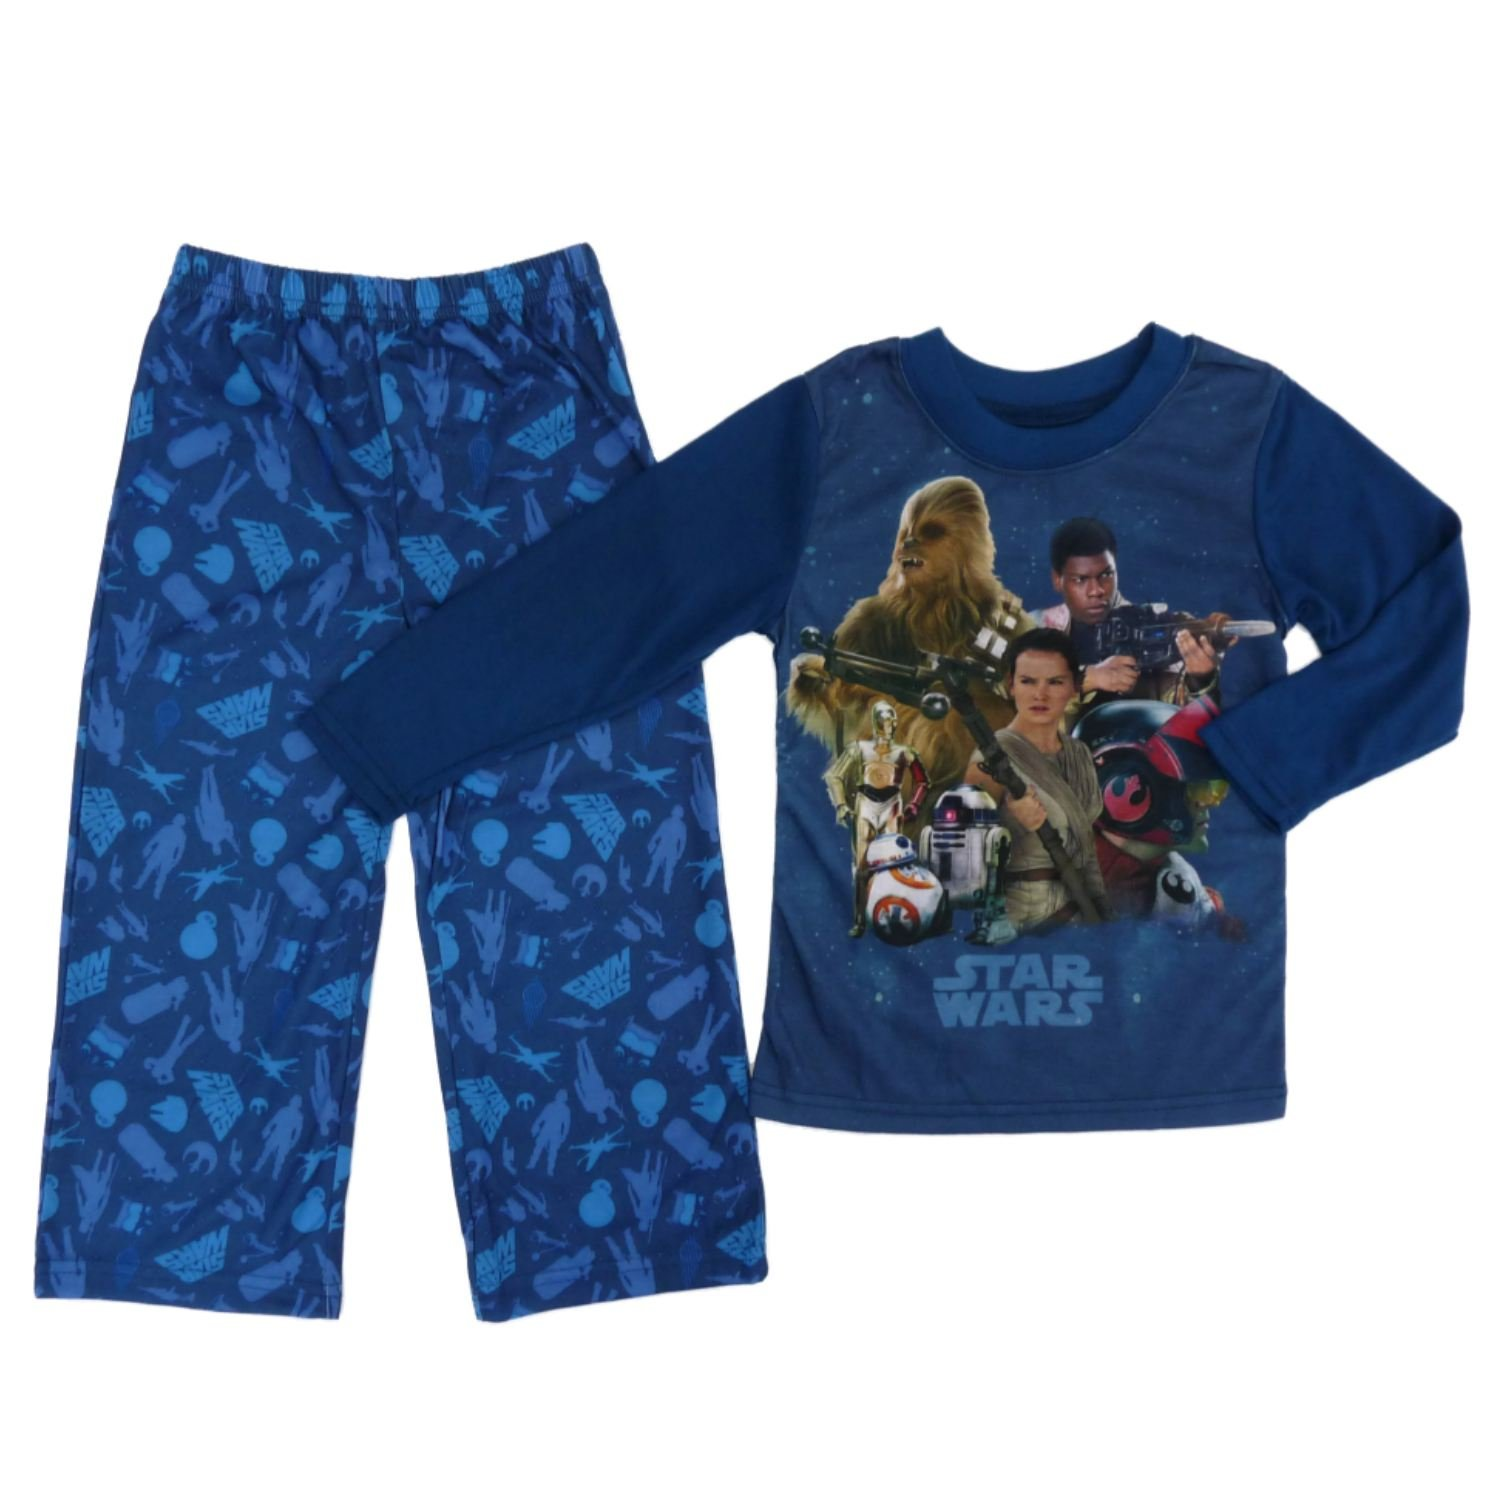 Star Wars Little Boys 2P The Force Awakens Sleepwear Rebel Pajama Set S